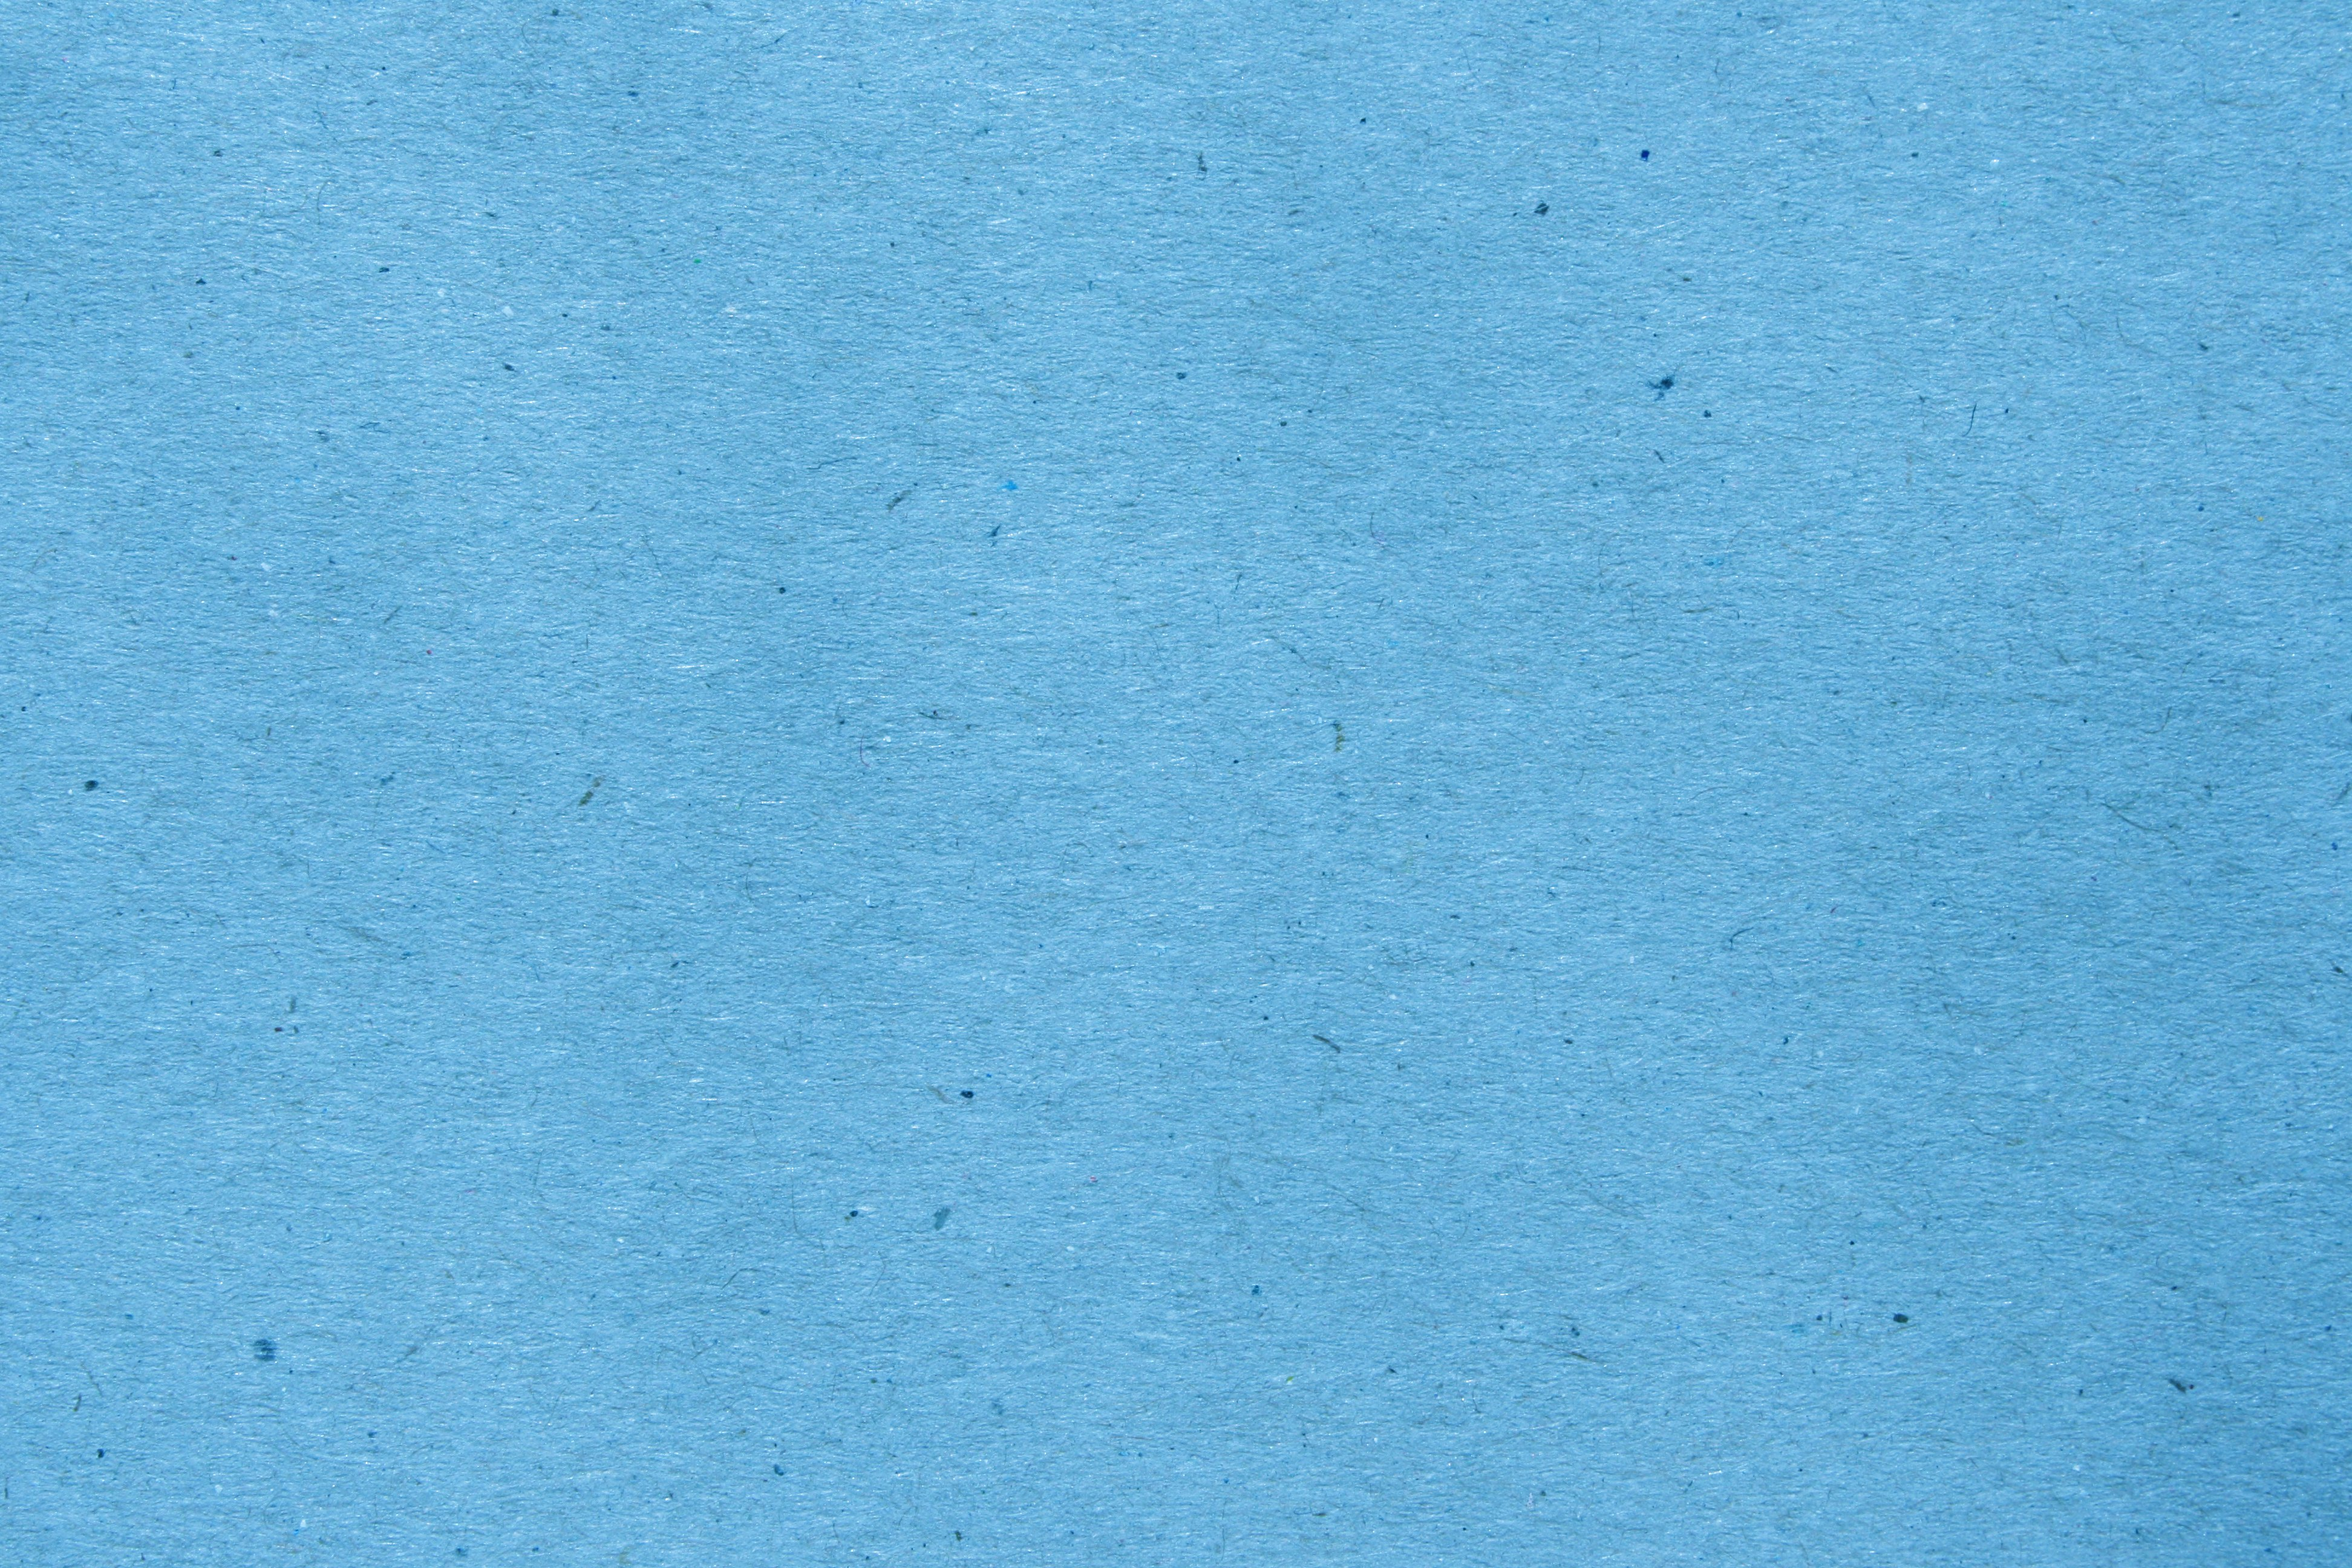 Blue Paper Texture With Flecks Picture Free Photograph